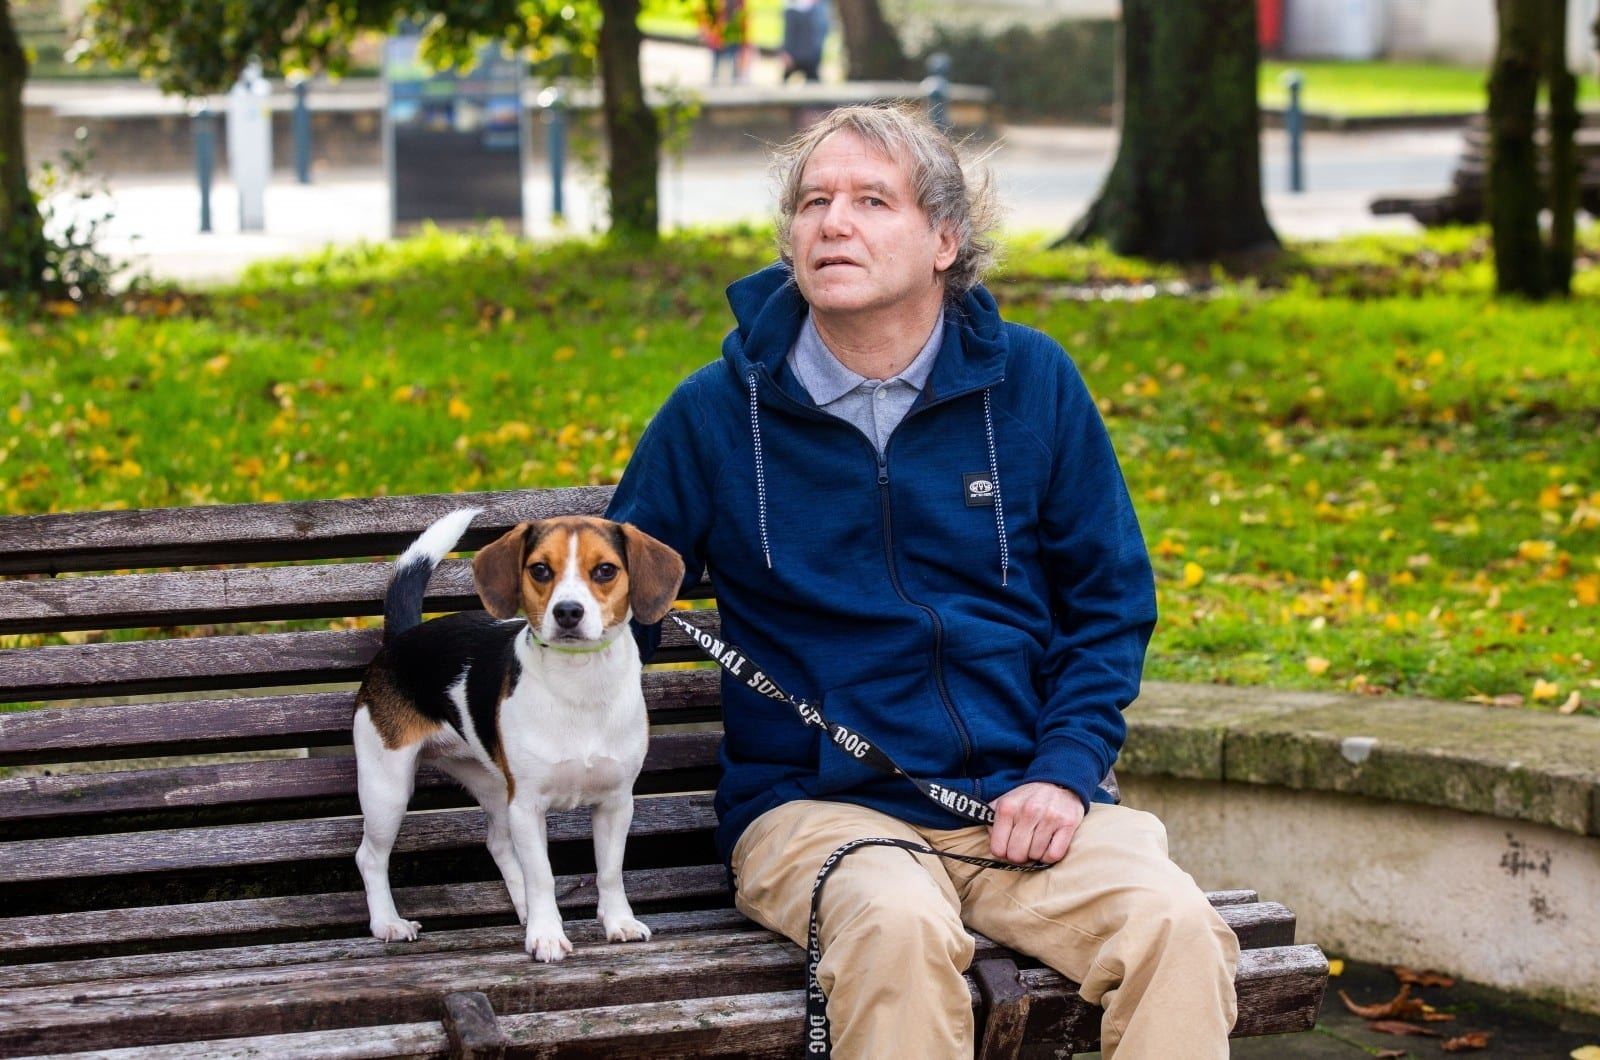 'Without Tammy I Wouldn't Be Able To Leave The House' – Vulnerable Man Prescribed 'Emotional Support Companion Dog' Has Been Taken To Court – To Face Eviction For Having A 'Pet'